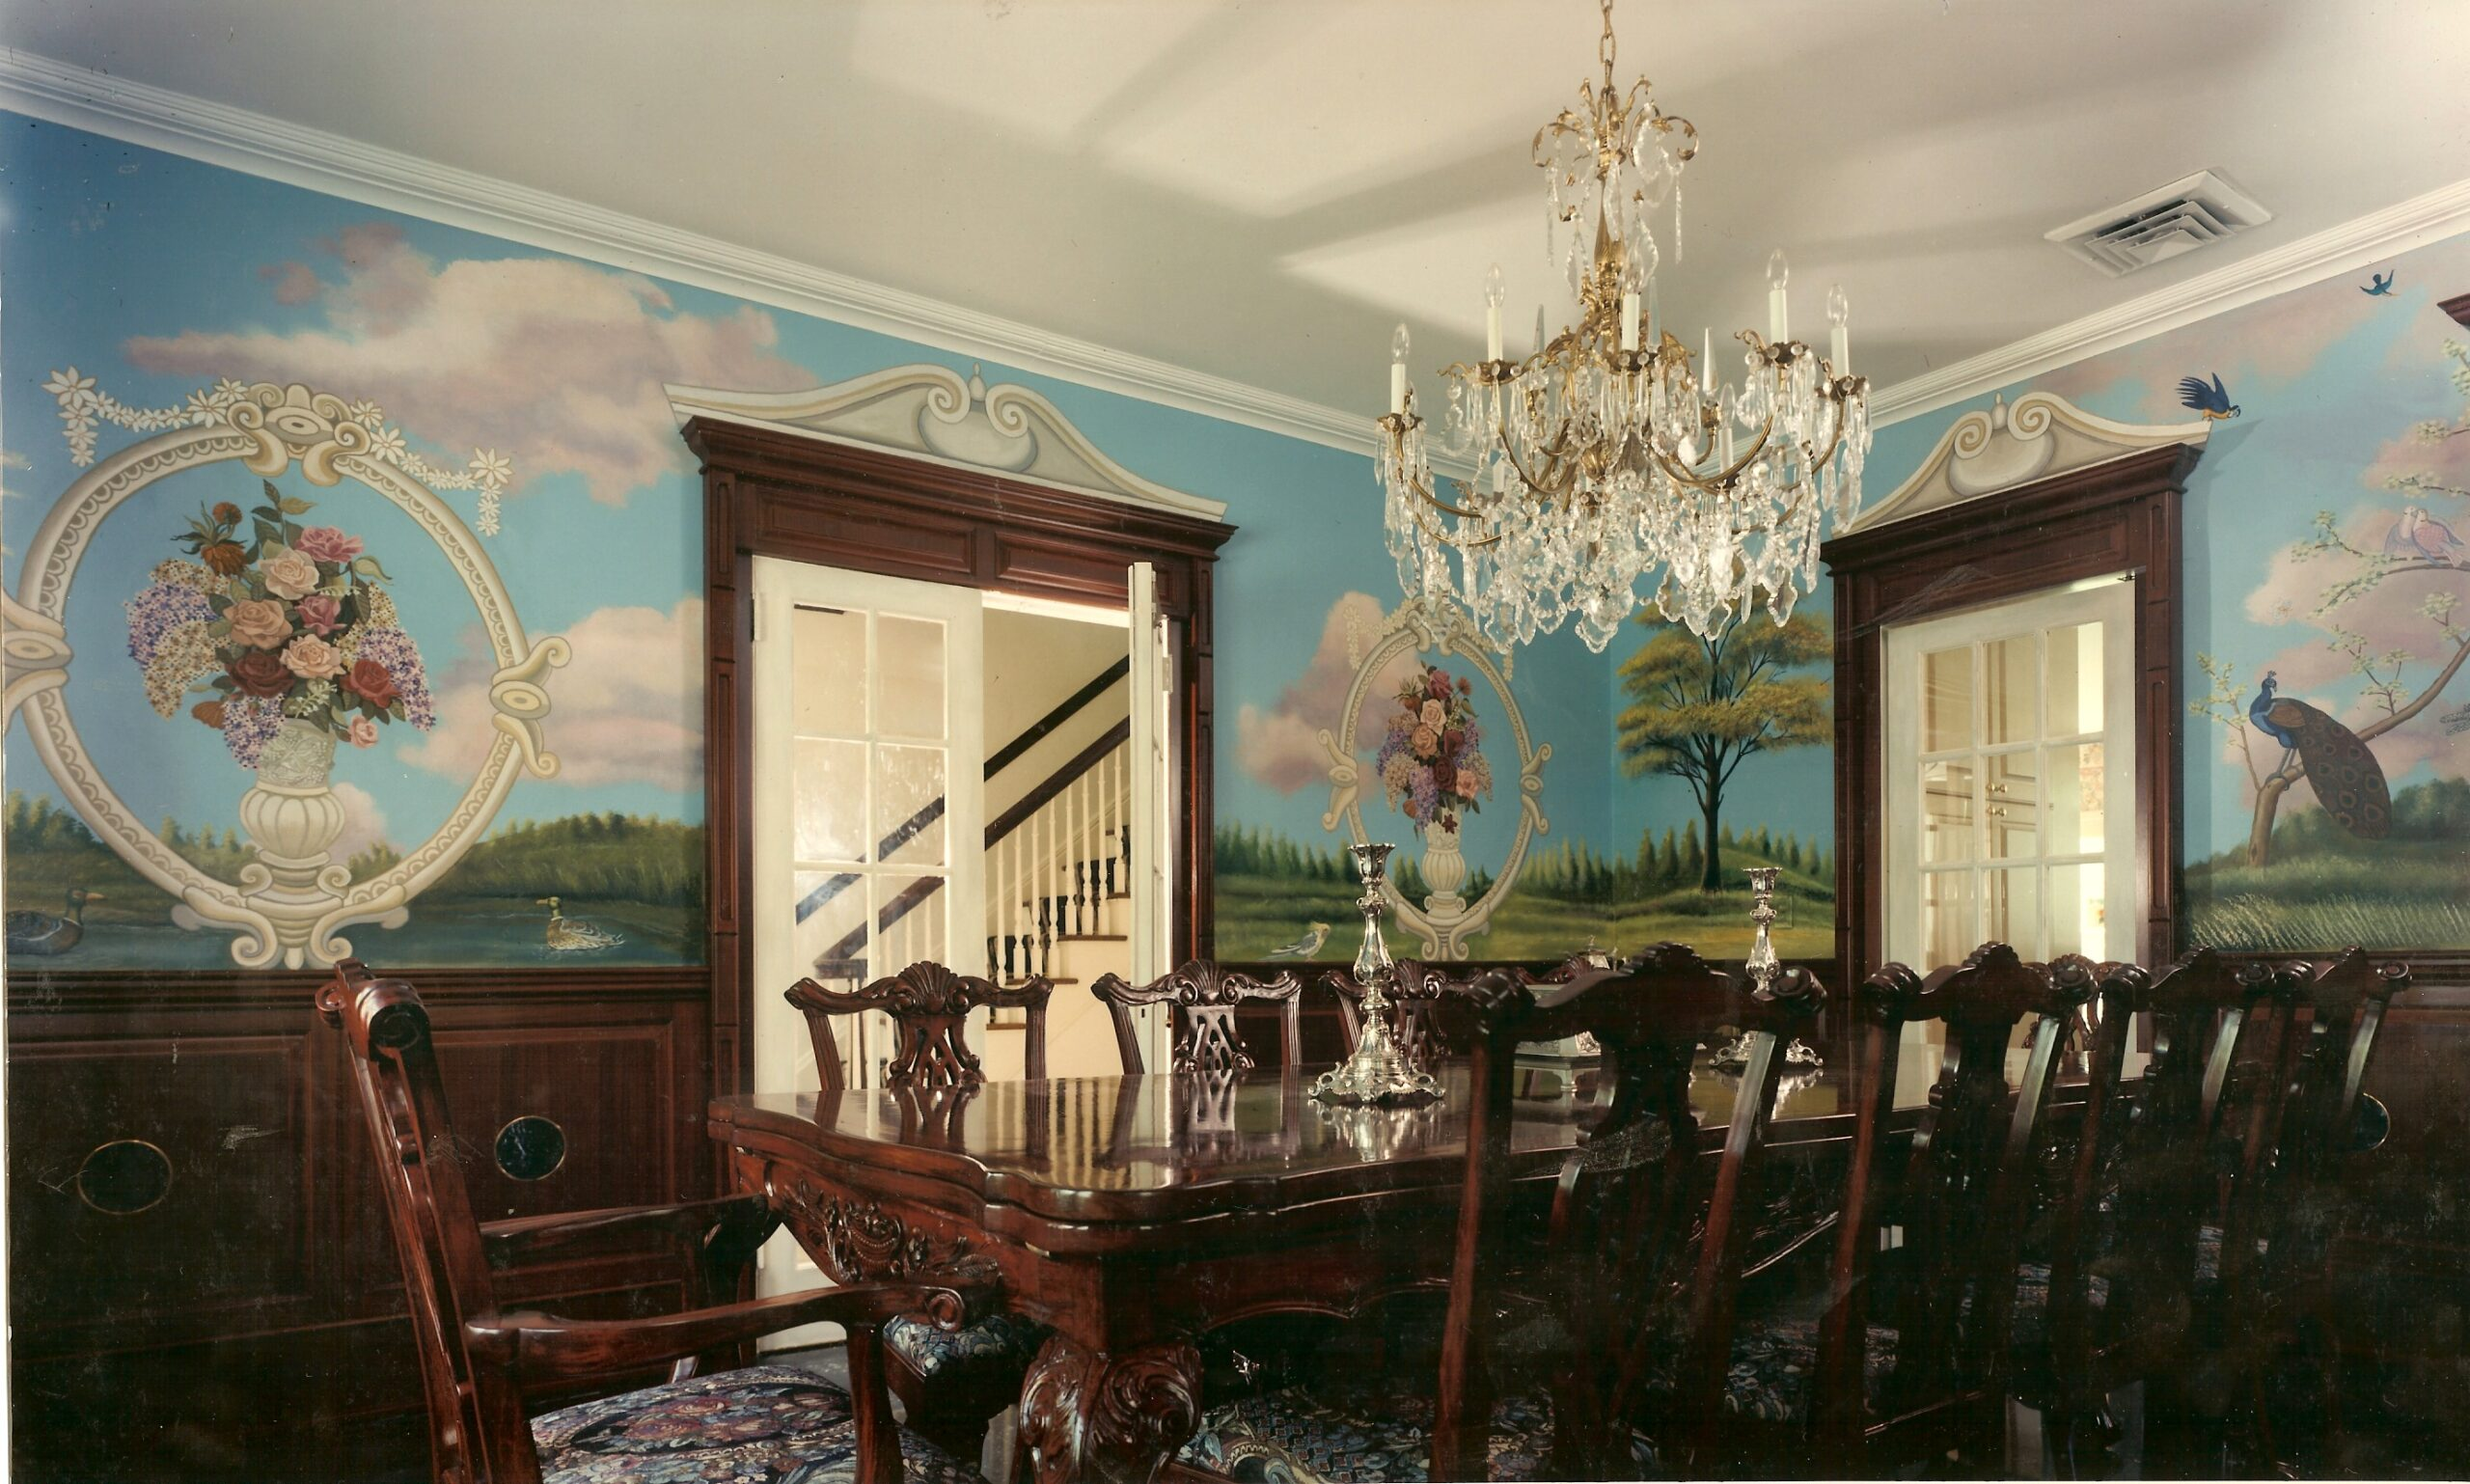 Diningroom Mural With Flowers And Vases Hewlett Harbor NY